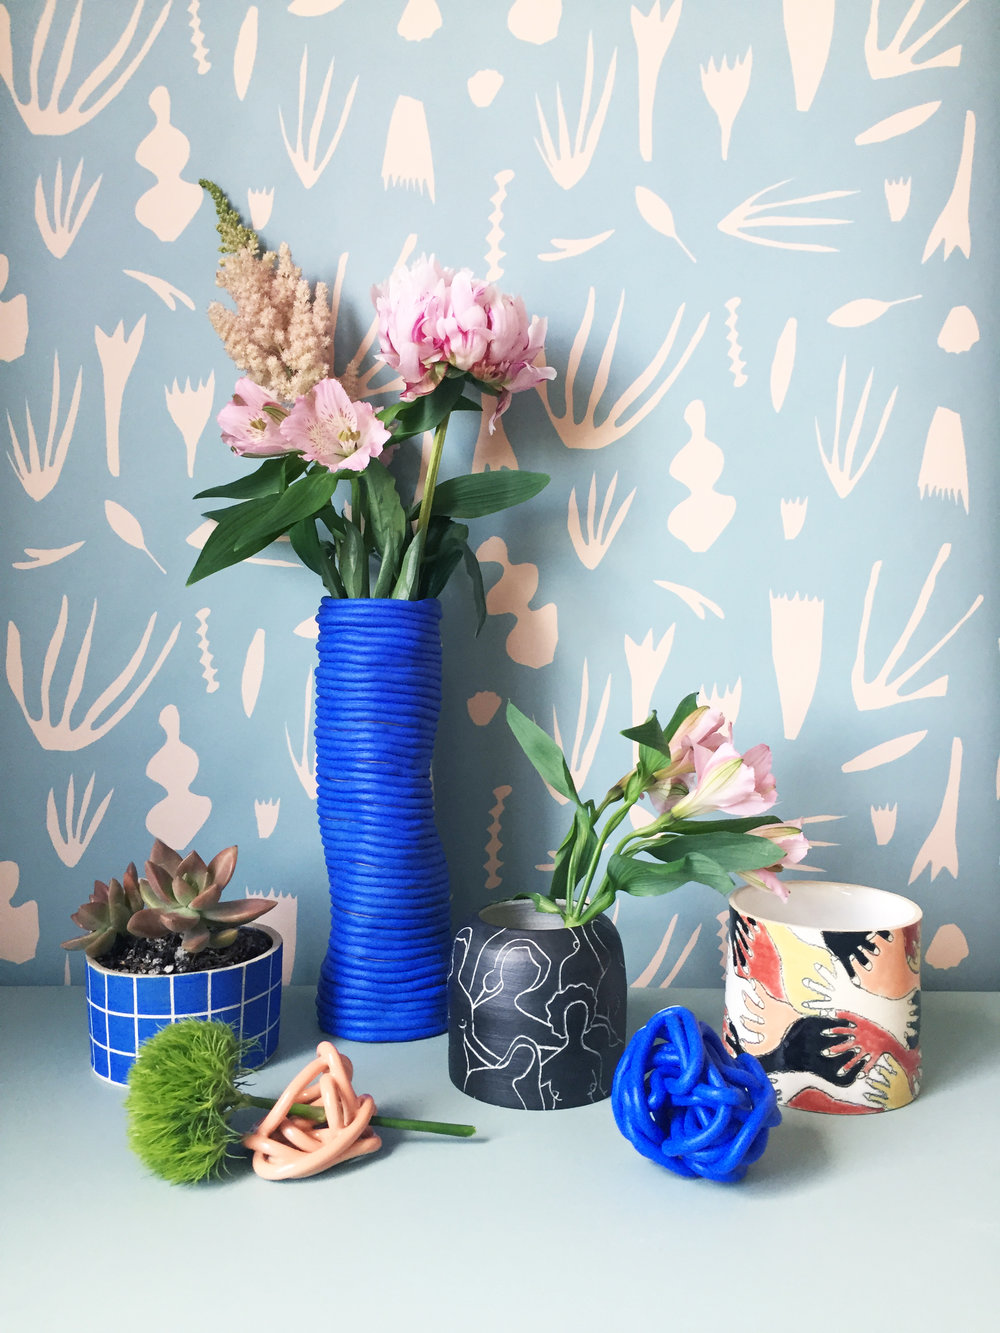 Wallpaper and Pottery by Kate Zaremba